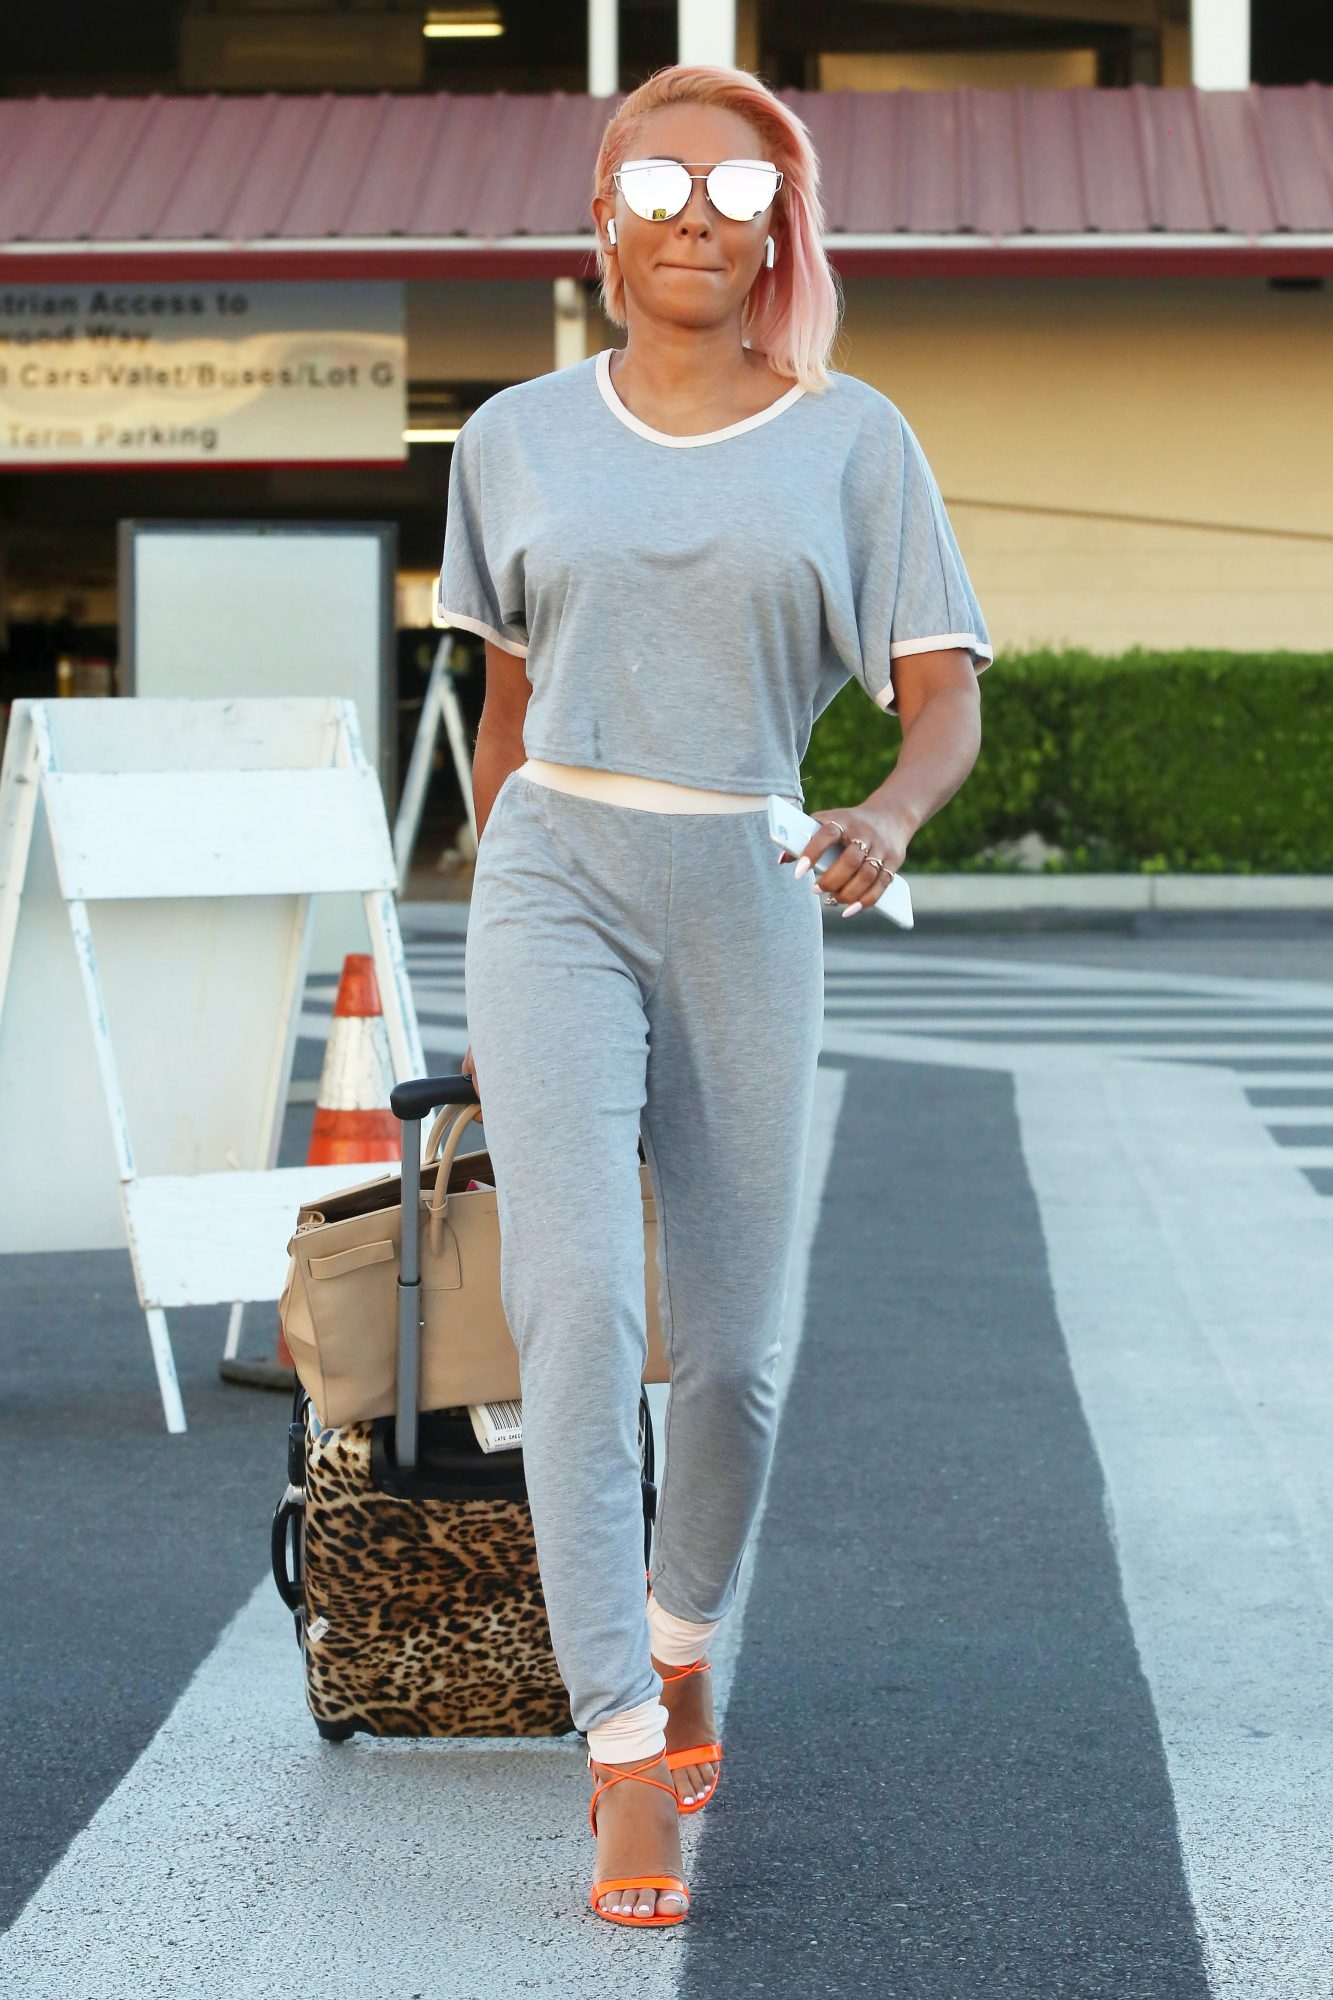 Mel B Spotted at Burbank Airport